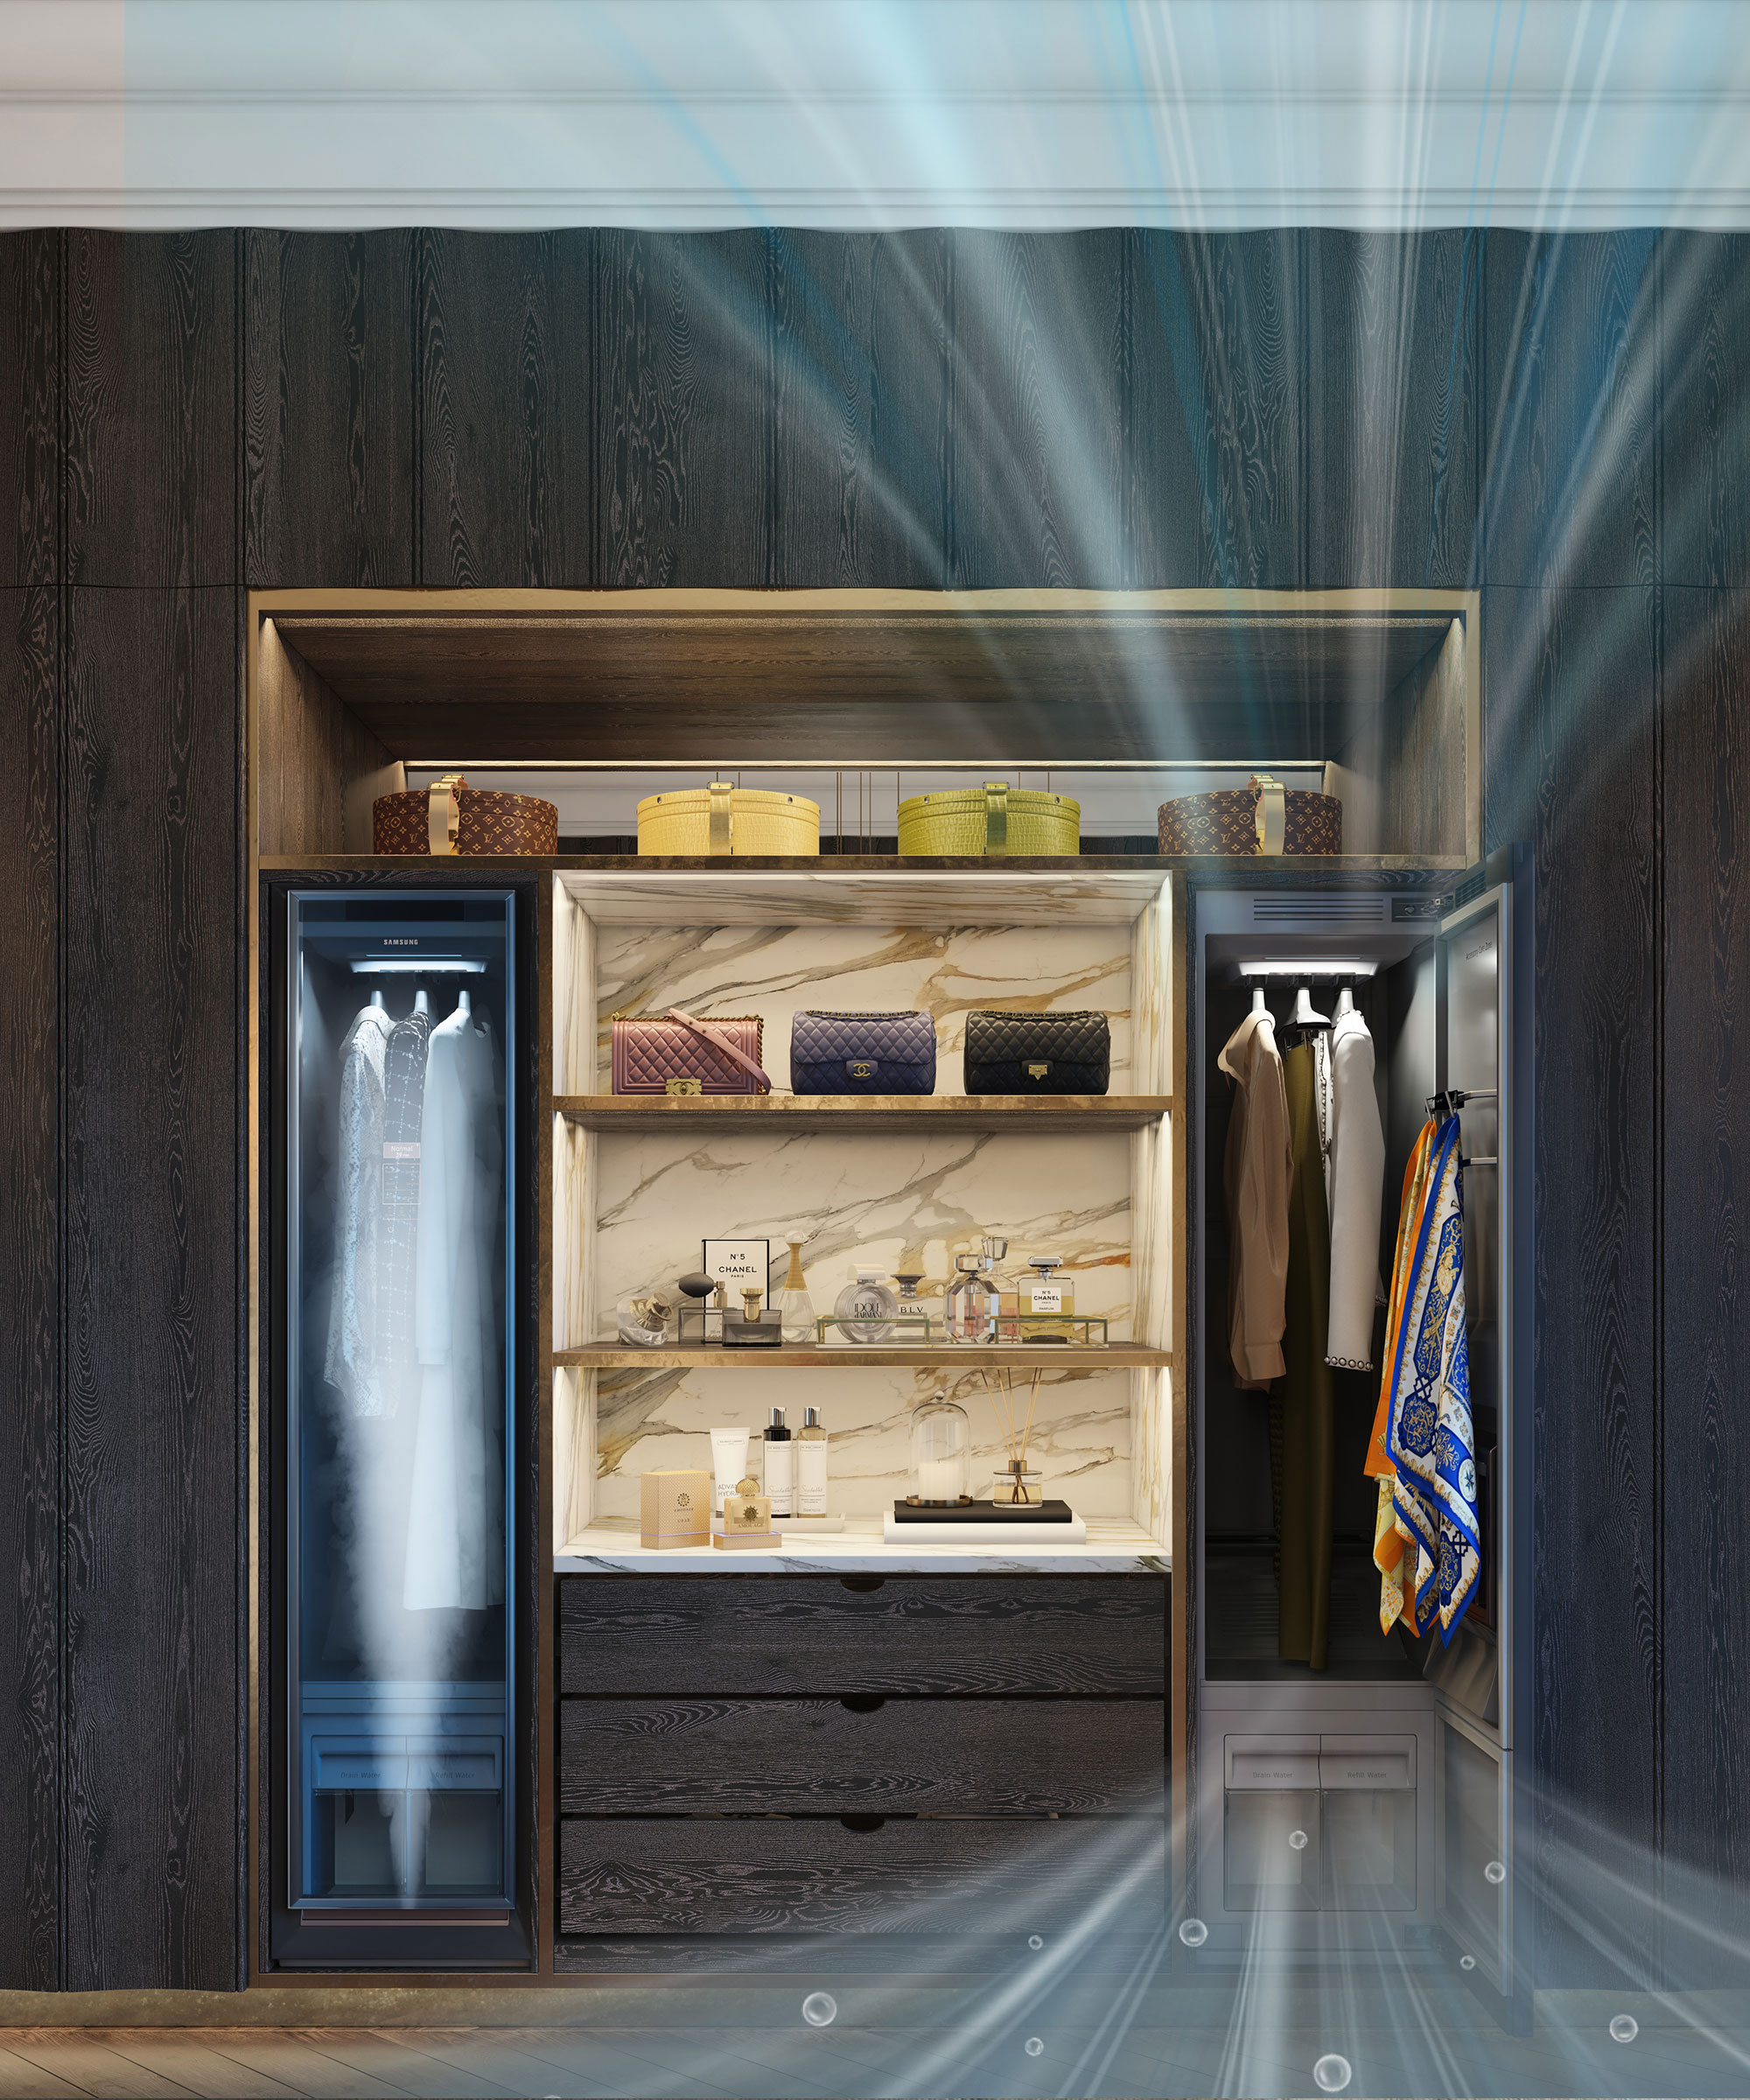 Samsung AirDresser in a Smallbone Icarus Dressing Room